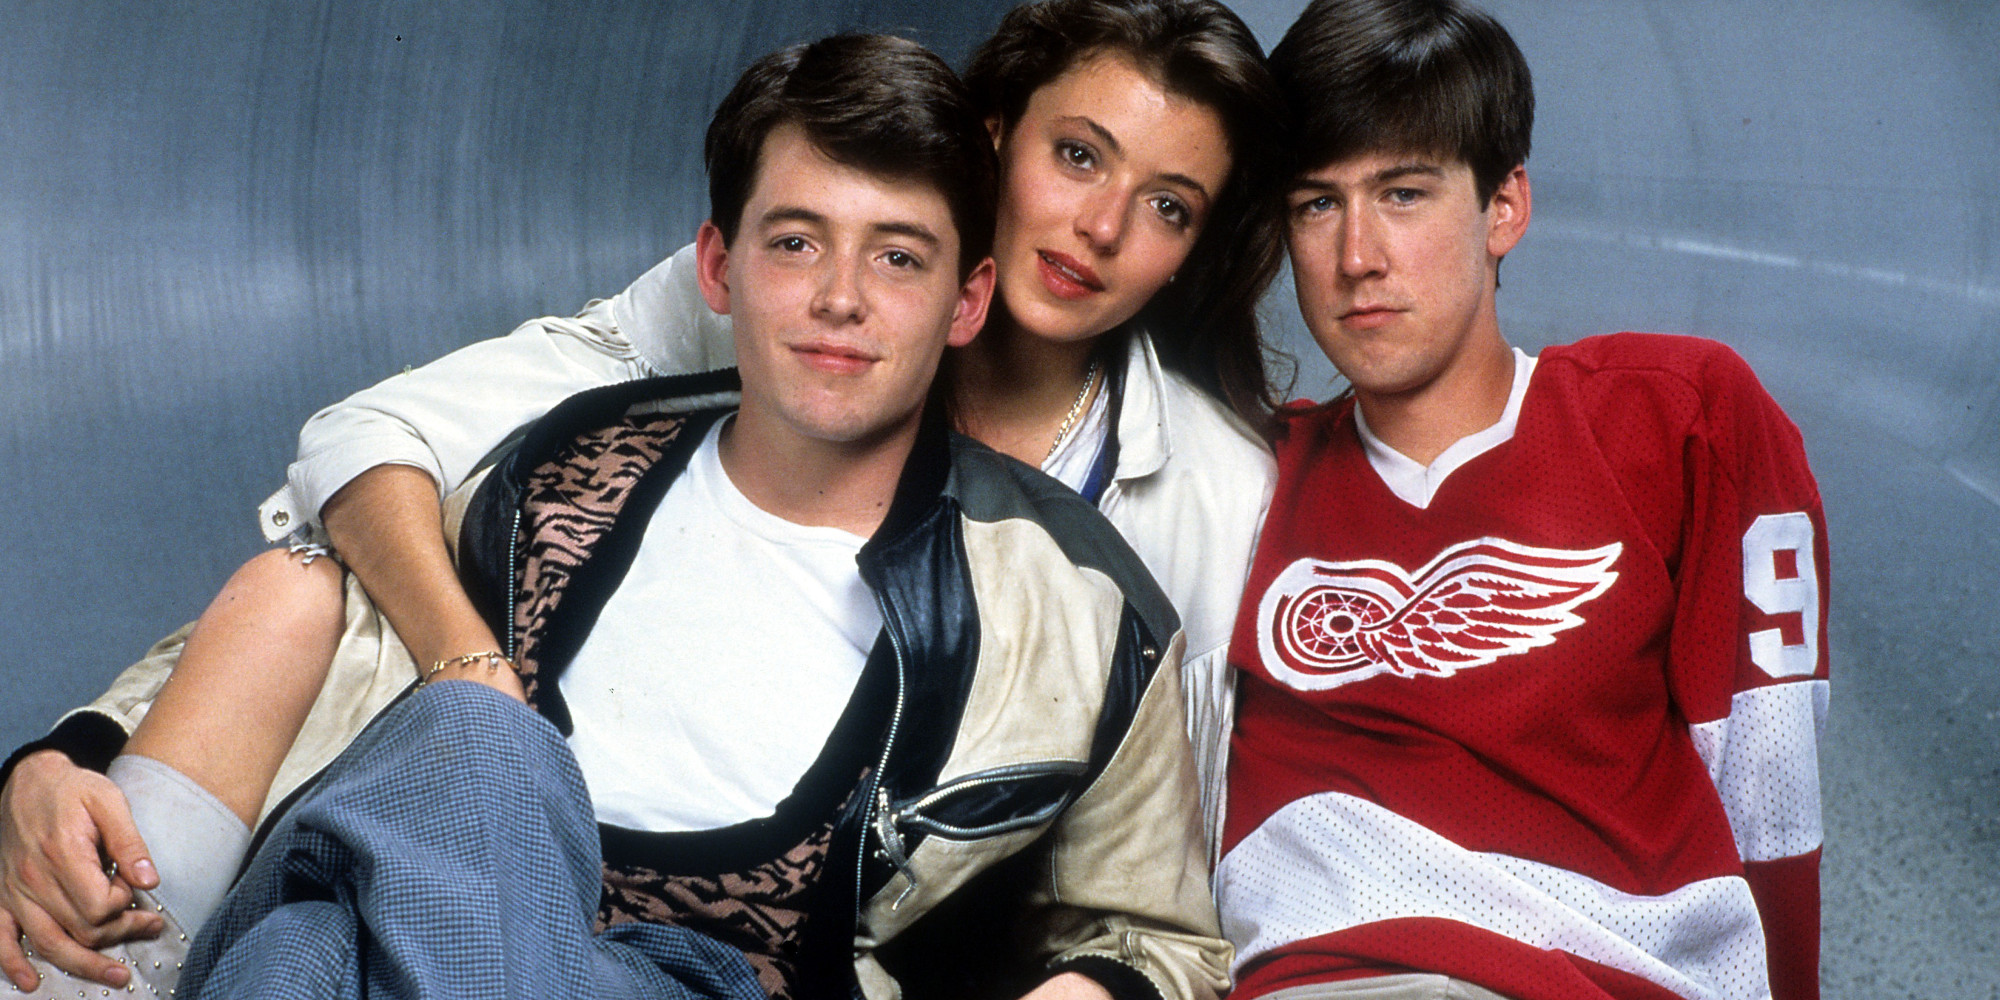 Matthew Broderick, Mia Sara, and Alan Ruck publicity portrait for the film 'Ferris Bueller's Day Off', 1986. (Photo by Paramount/Getty Images)